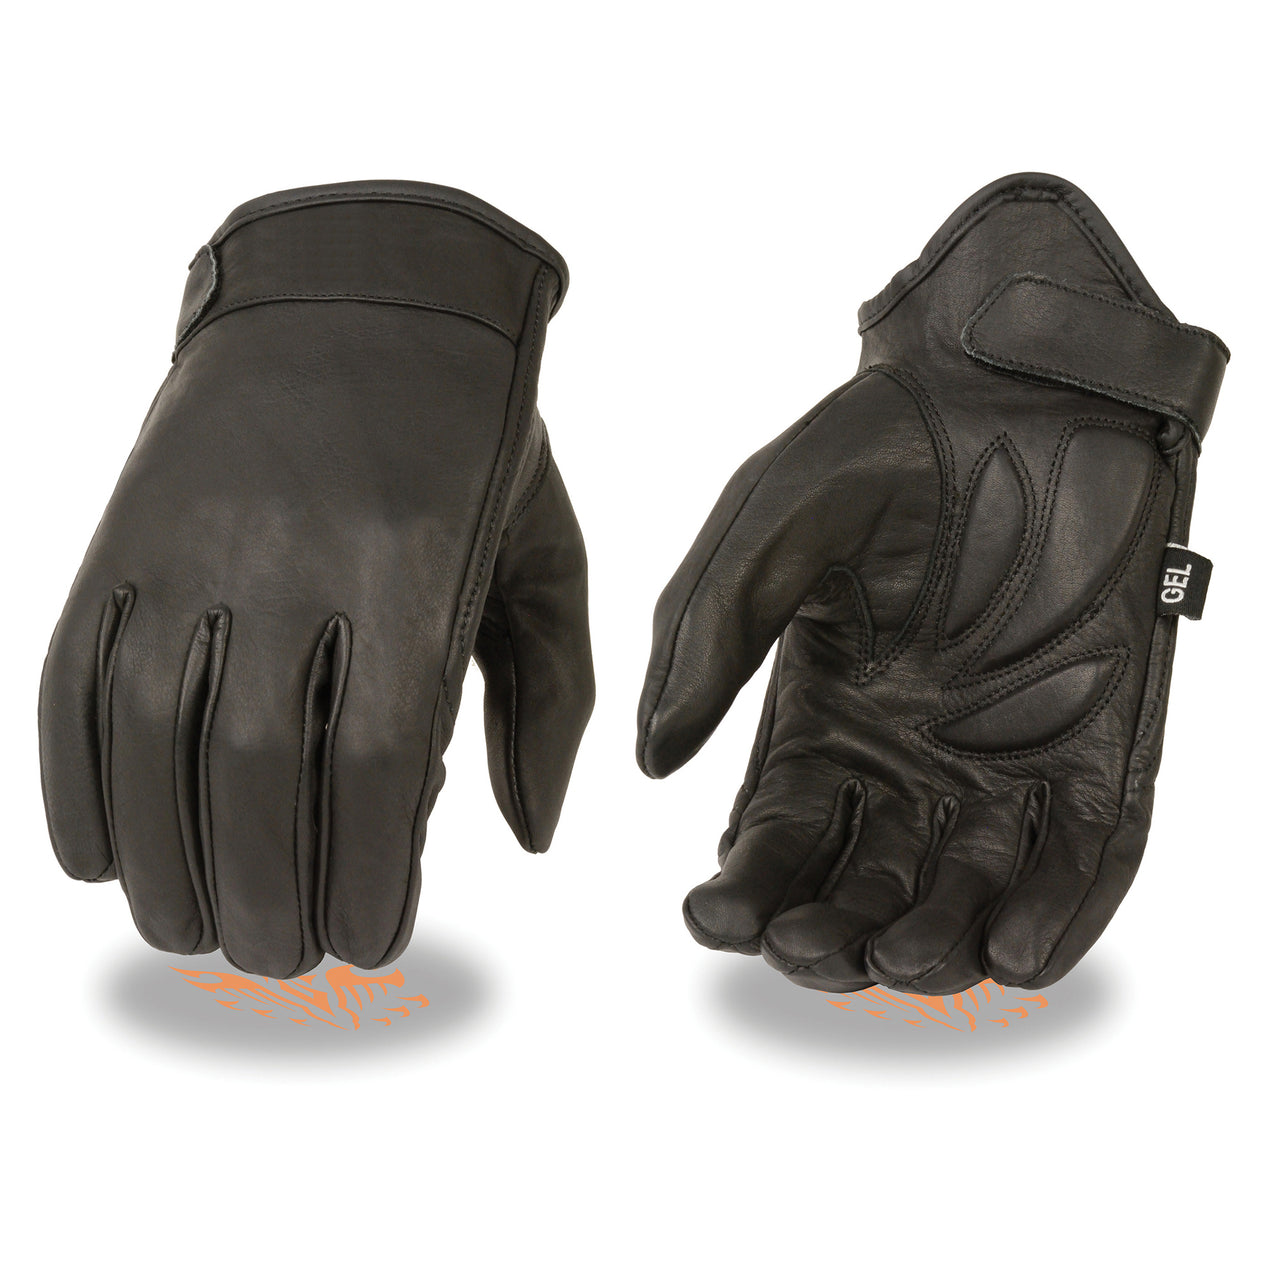 Men's Short Wristed Leather Gloves w/ Gel Palm - HighwayLeather